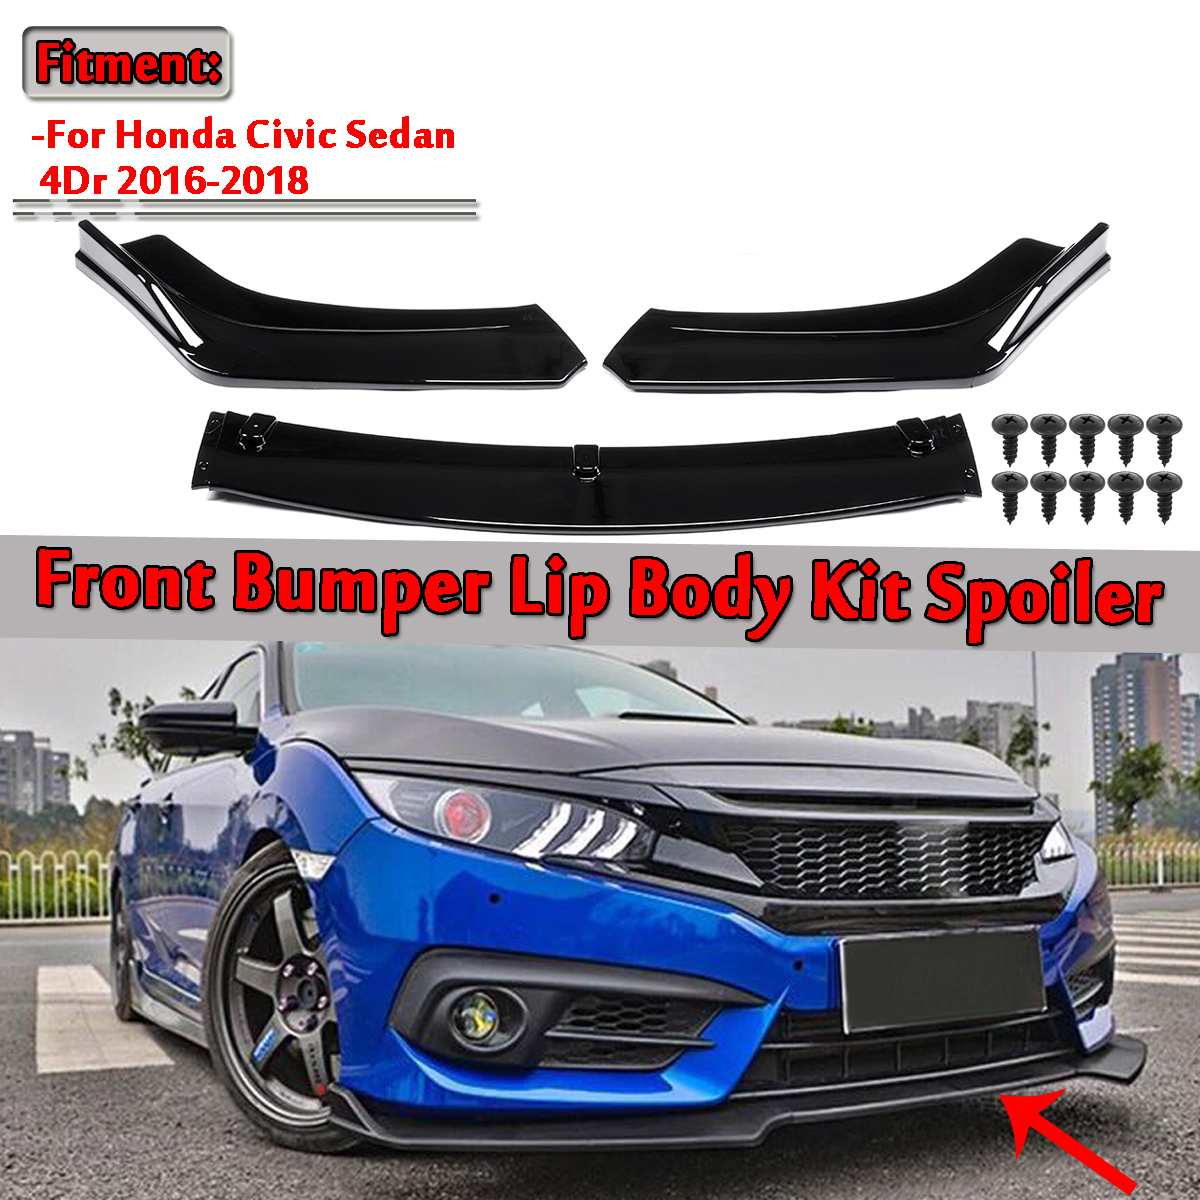 3pcs Universal Car Front Lower Bumper Lip Spoiler Body Kit For Honda For Civic Sedan 4Dr 2016 2018 Carbon Fiber Look / Black